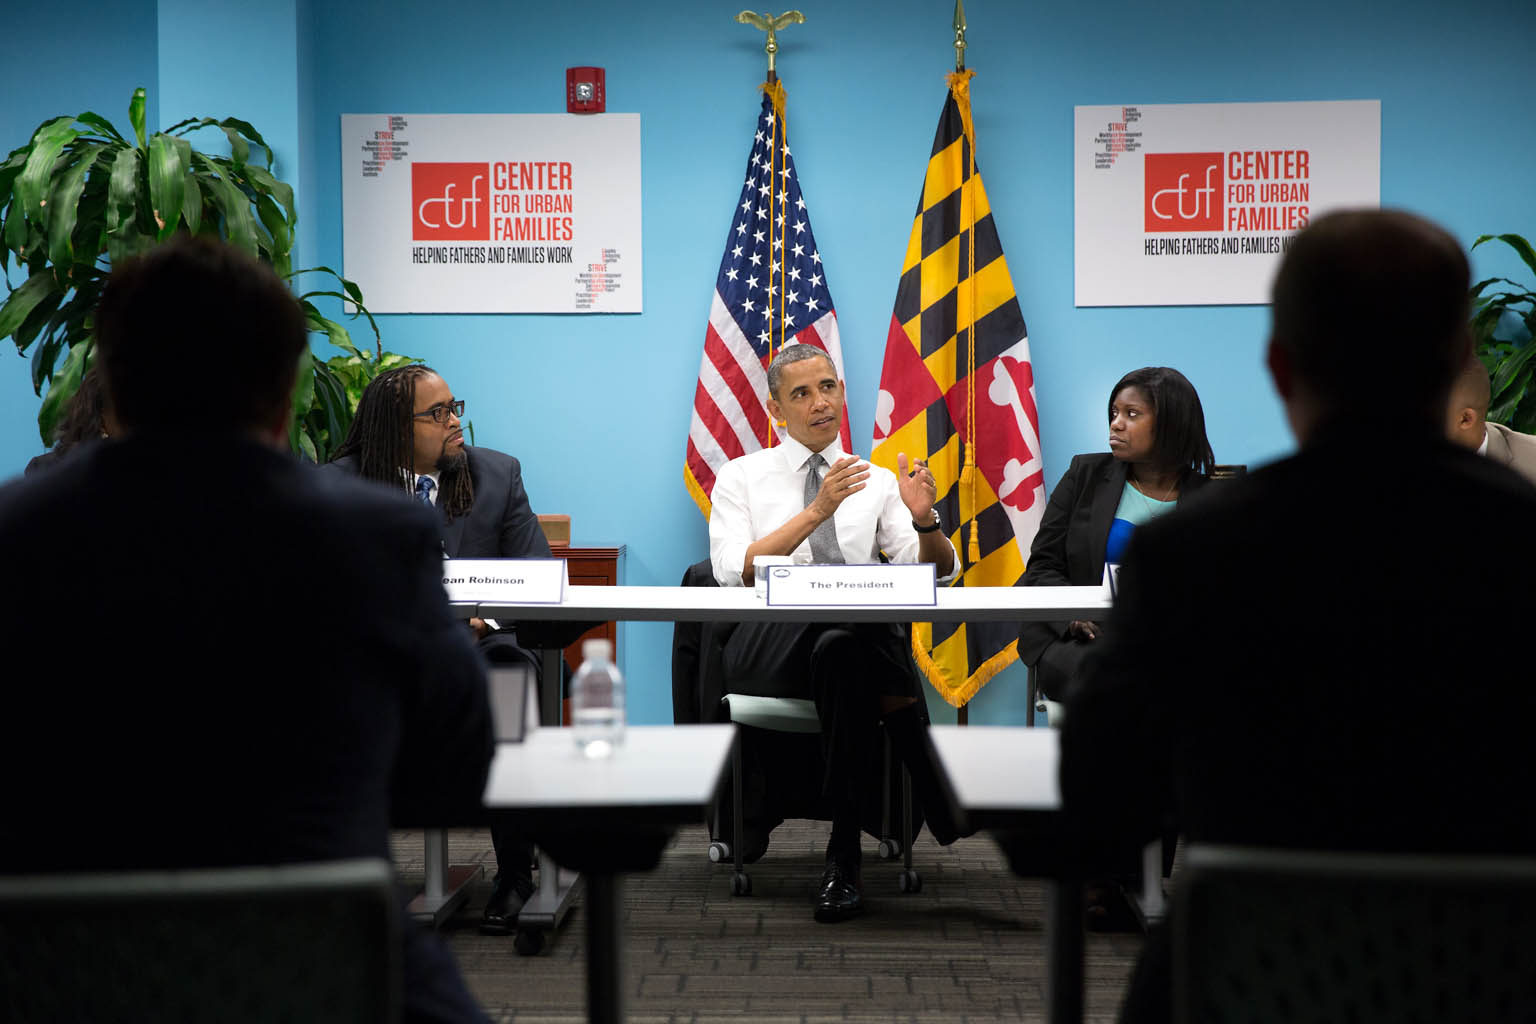 President Barack Obama participates in a roundtable at the Center for Urban Families